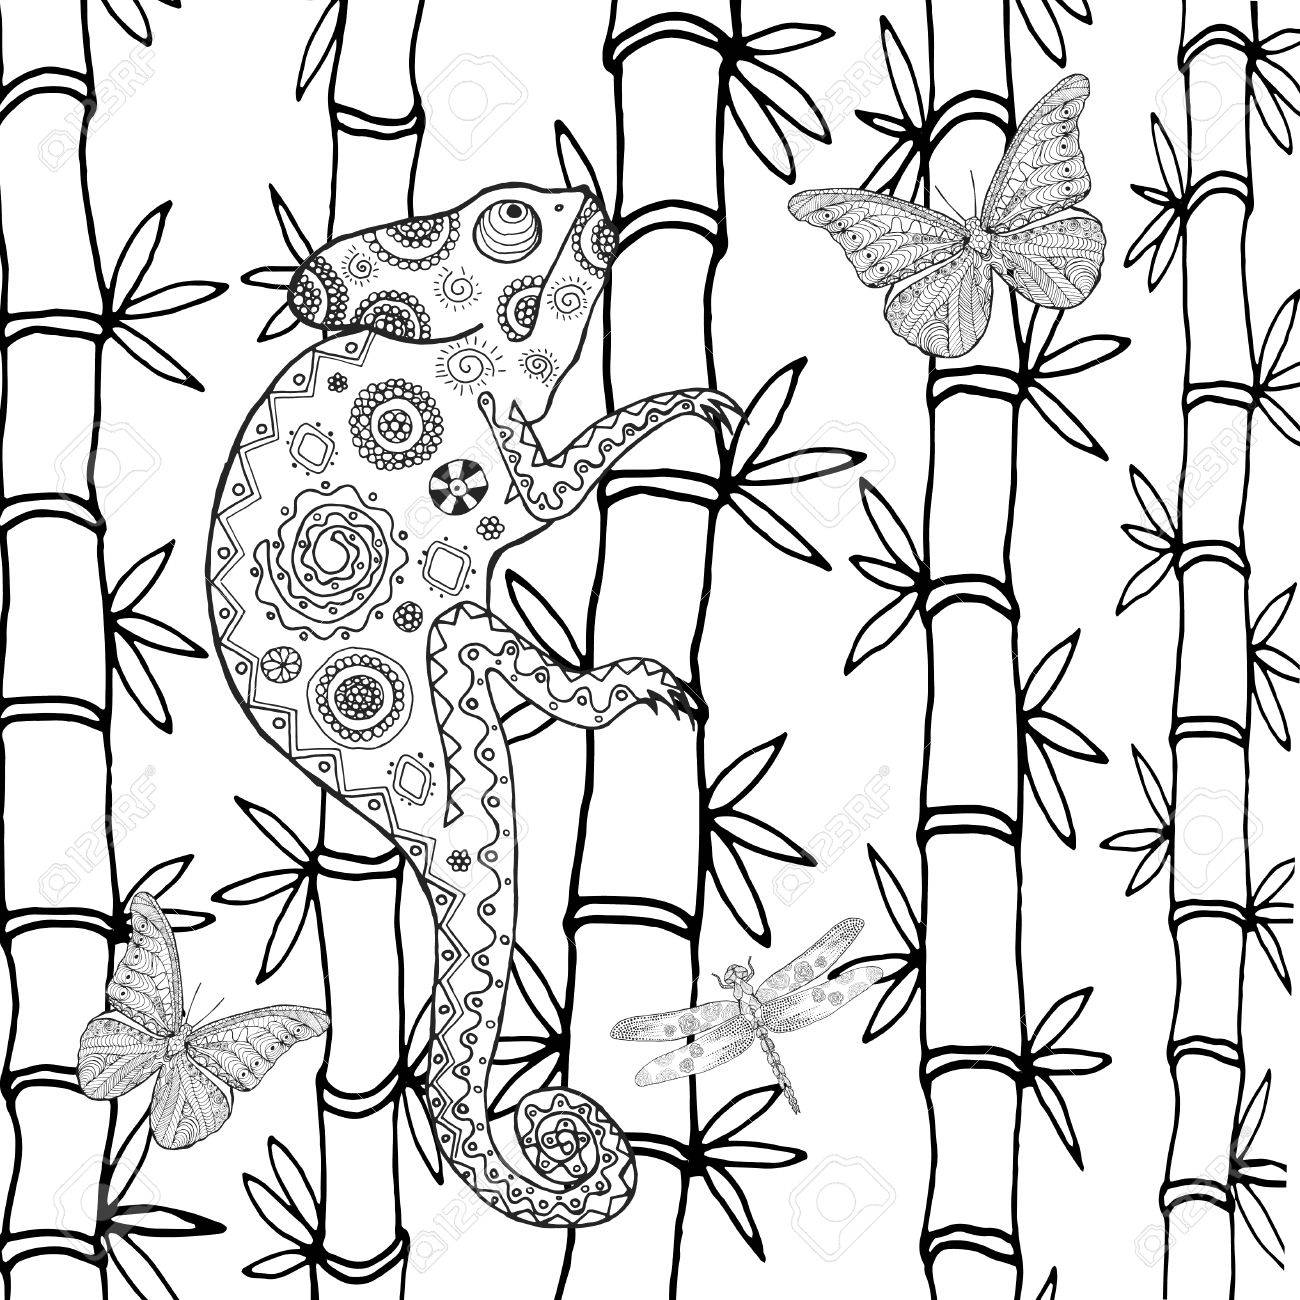 Chameleon Coloring Page Royalty Free Cliparts, Vectors, And Stock ...